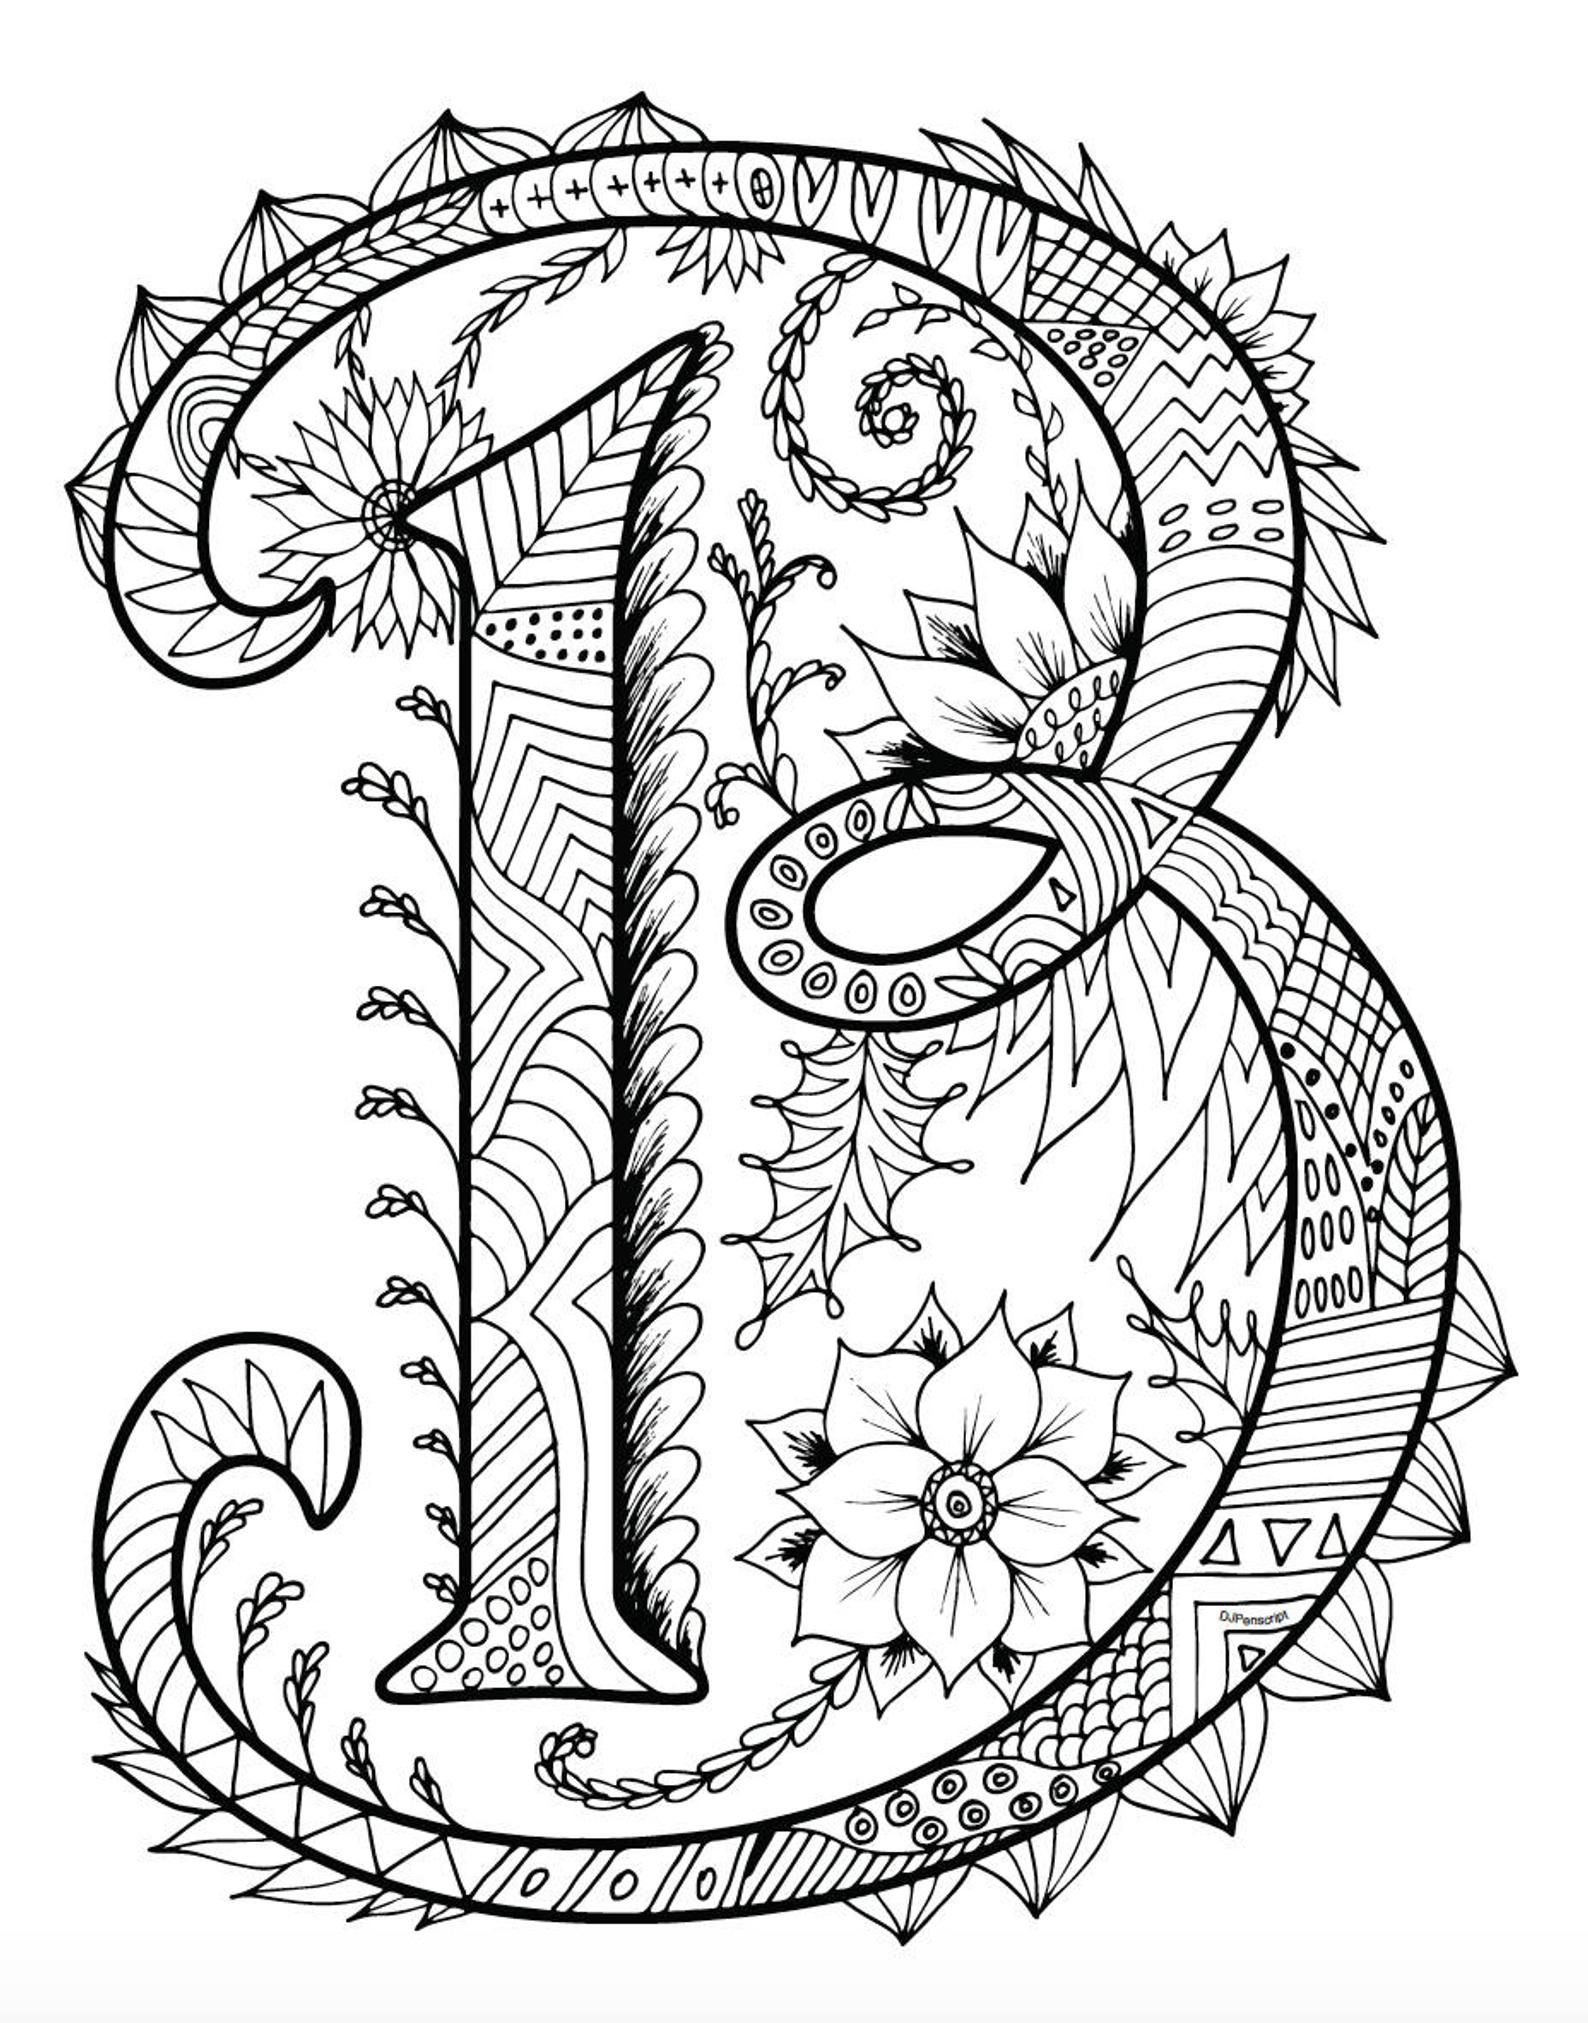 Alphabet Coloring Pages Zentangle Coloring Book For Adults Etsy Alphabet Coloring Pages Mandala Coloring Pages Coloring Book Pages